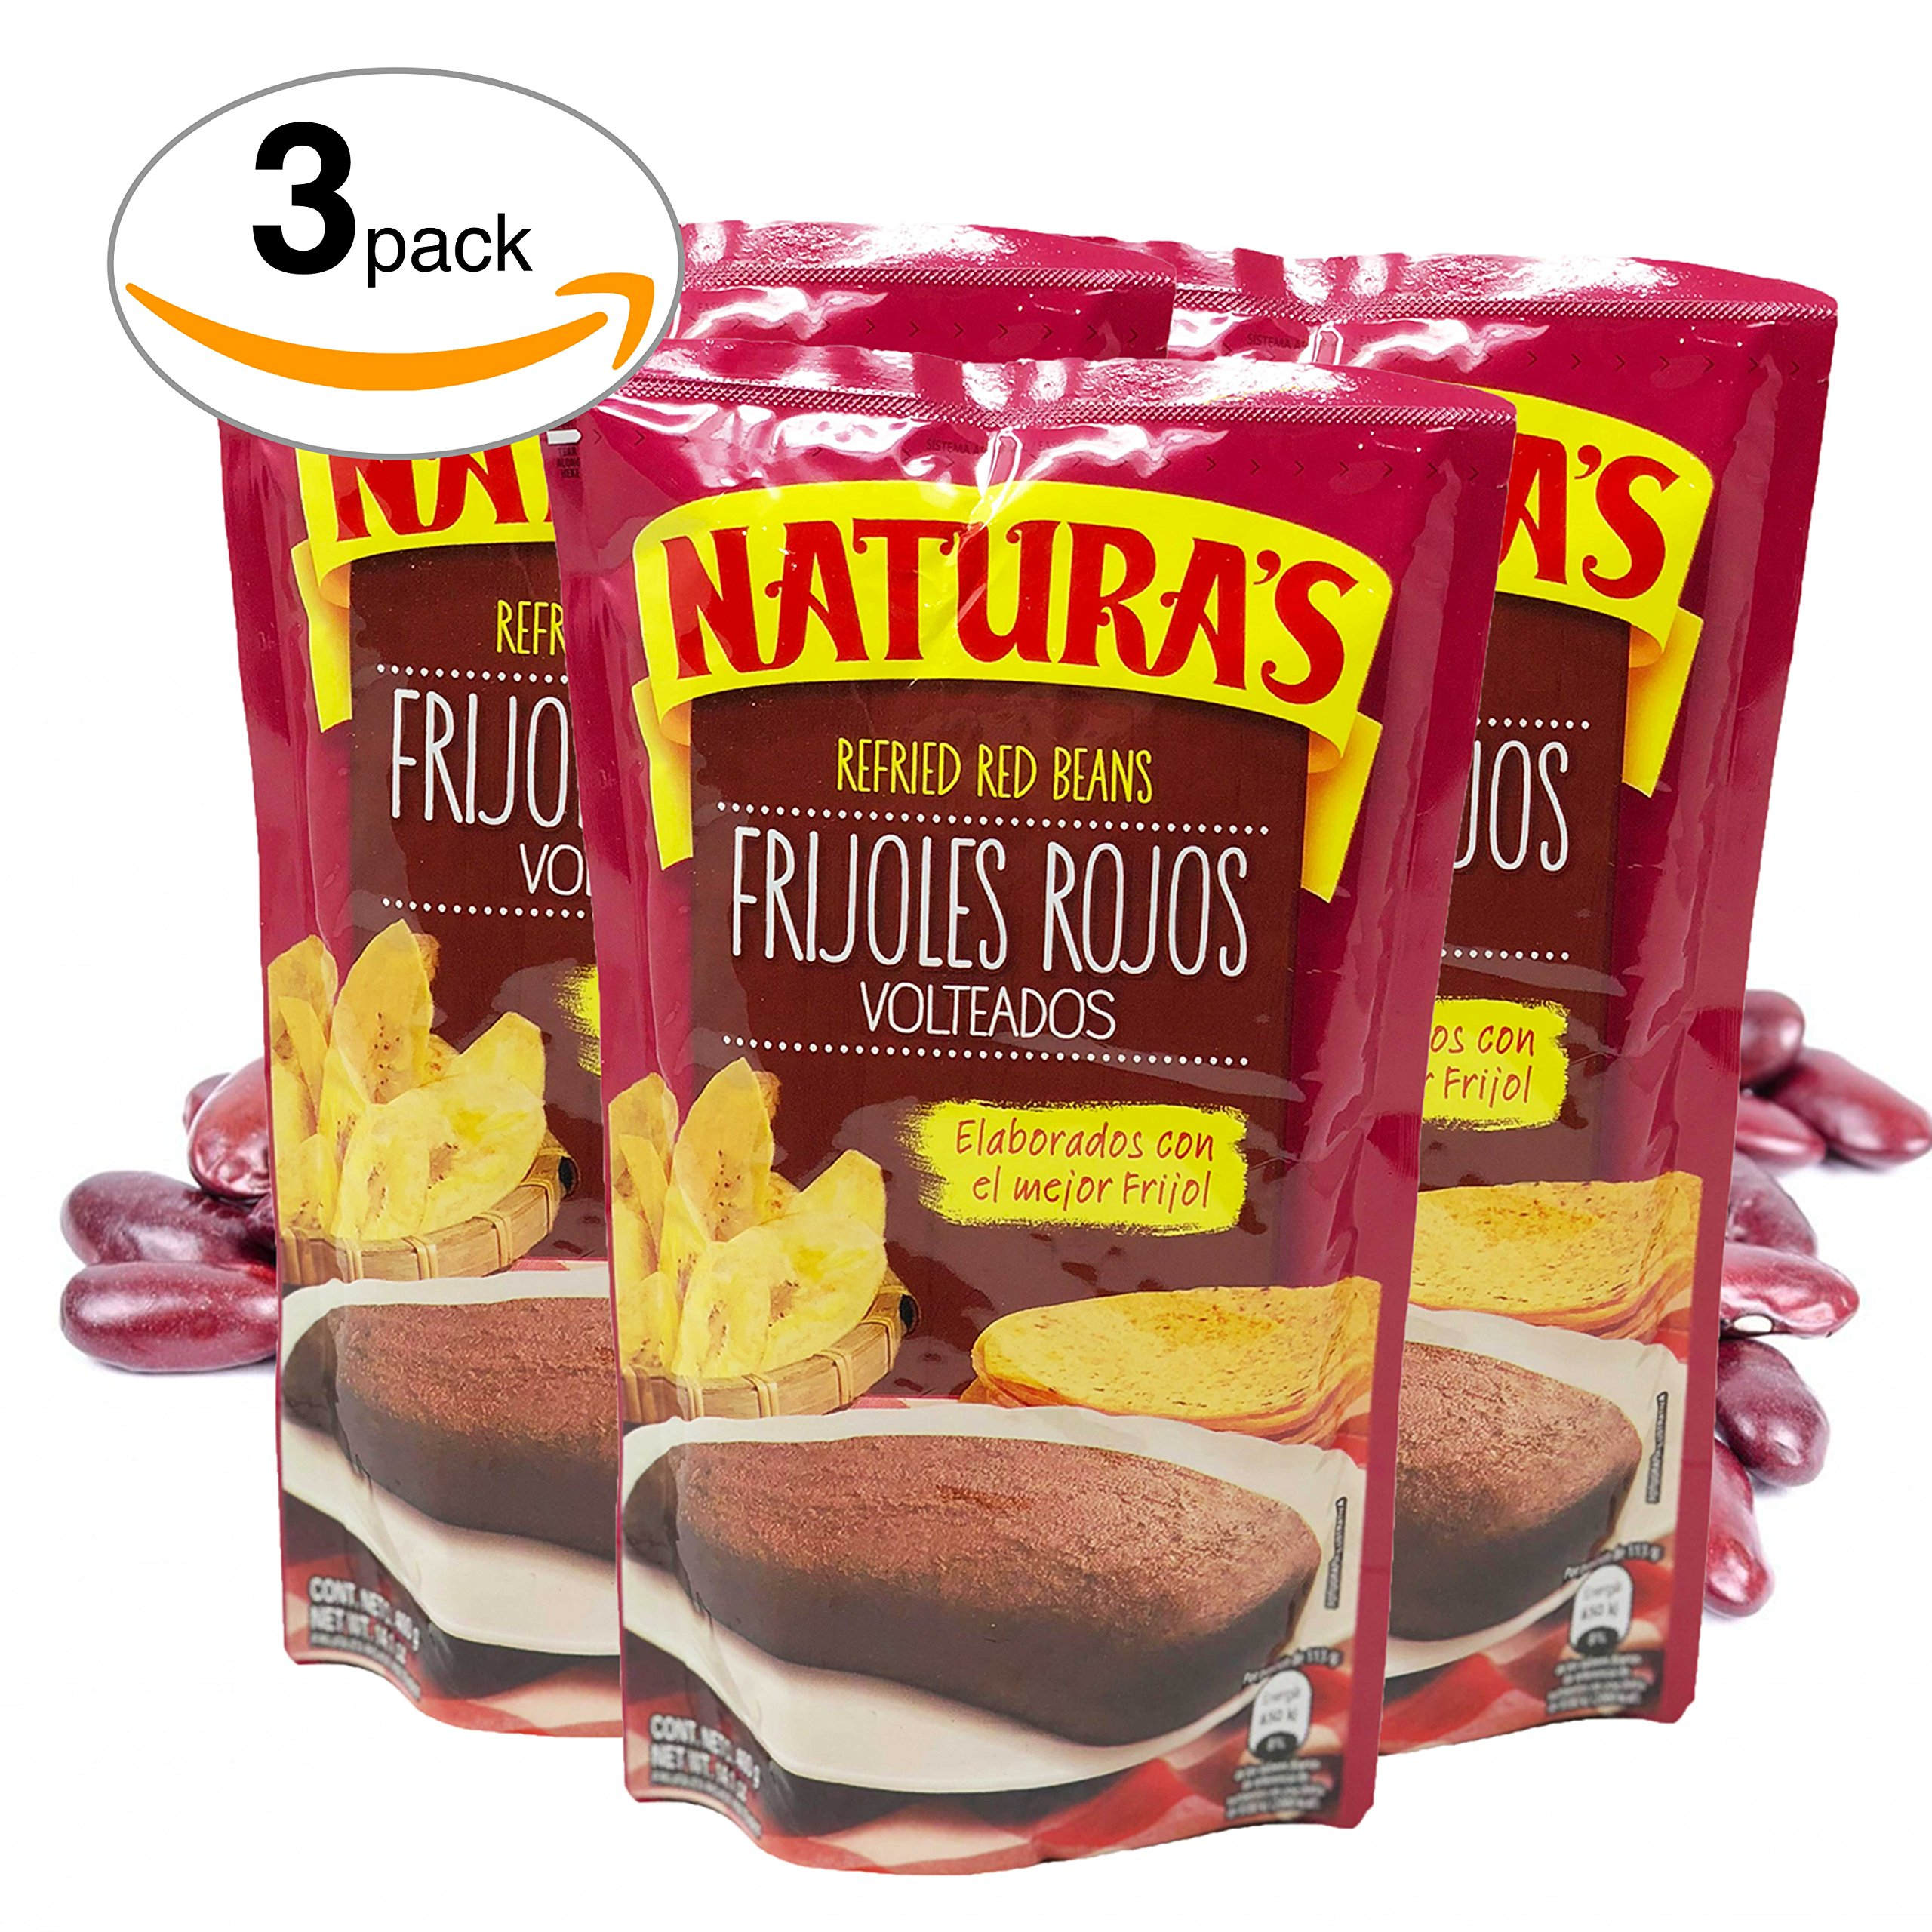 Naturas Refried Red Kidney Beans. Frijoles Rojos Volteados | 100% Plant Based | Ready To Serve| Made With Ground Beans of Beans|No Preservative,No Artificial Colors|100% Natural(800g,28.2 oz)3pack by NATURA'S